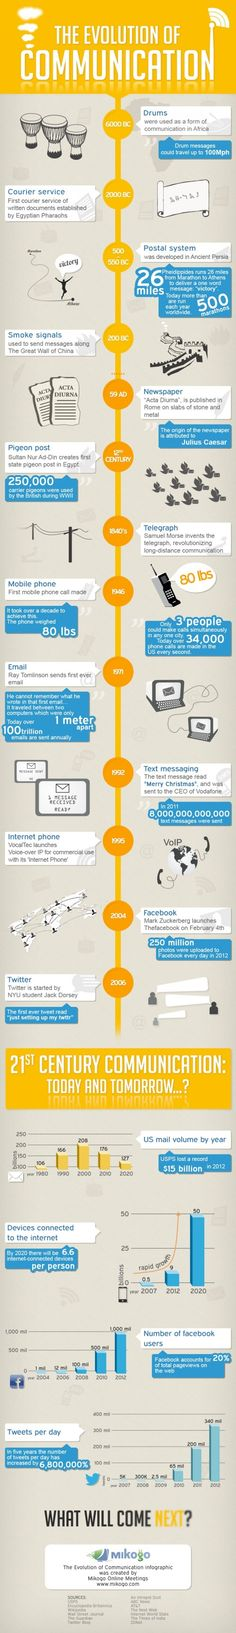 Evolution of Communication Infographic - exclusive for ViralBlog